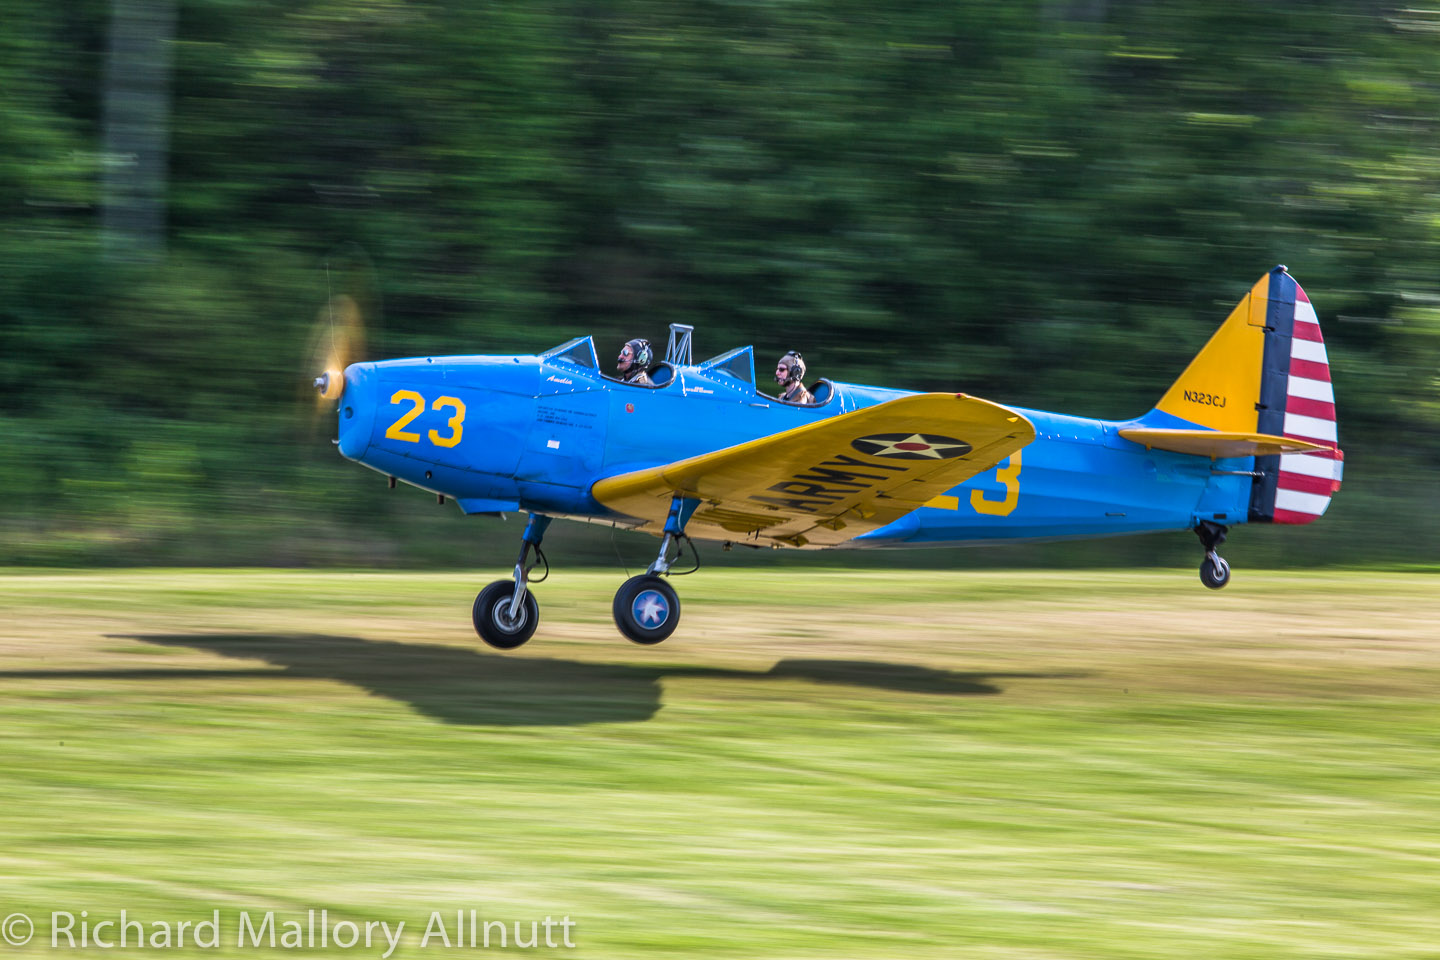 _C8A0850 - Richard Mallory Allnutt photo - Warbirds Over the Beach - Military Aviation Museum - Pungo, VA - May 17, 2014